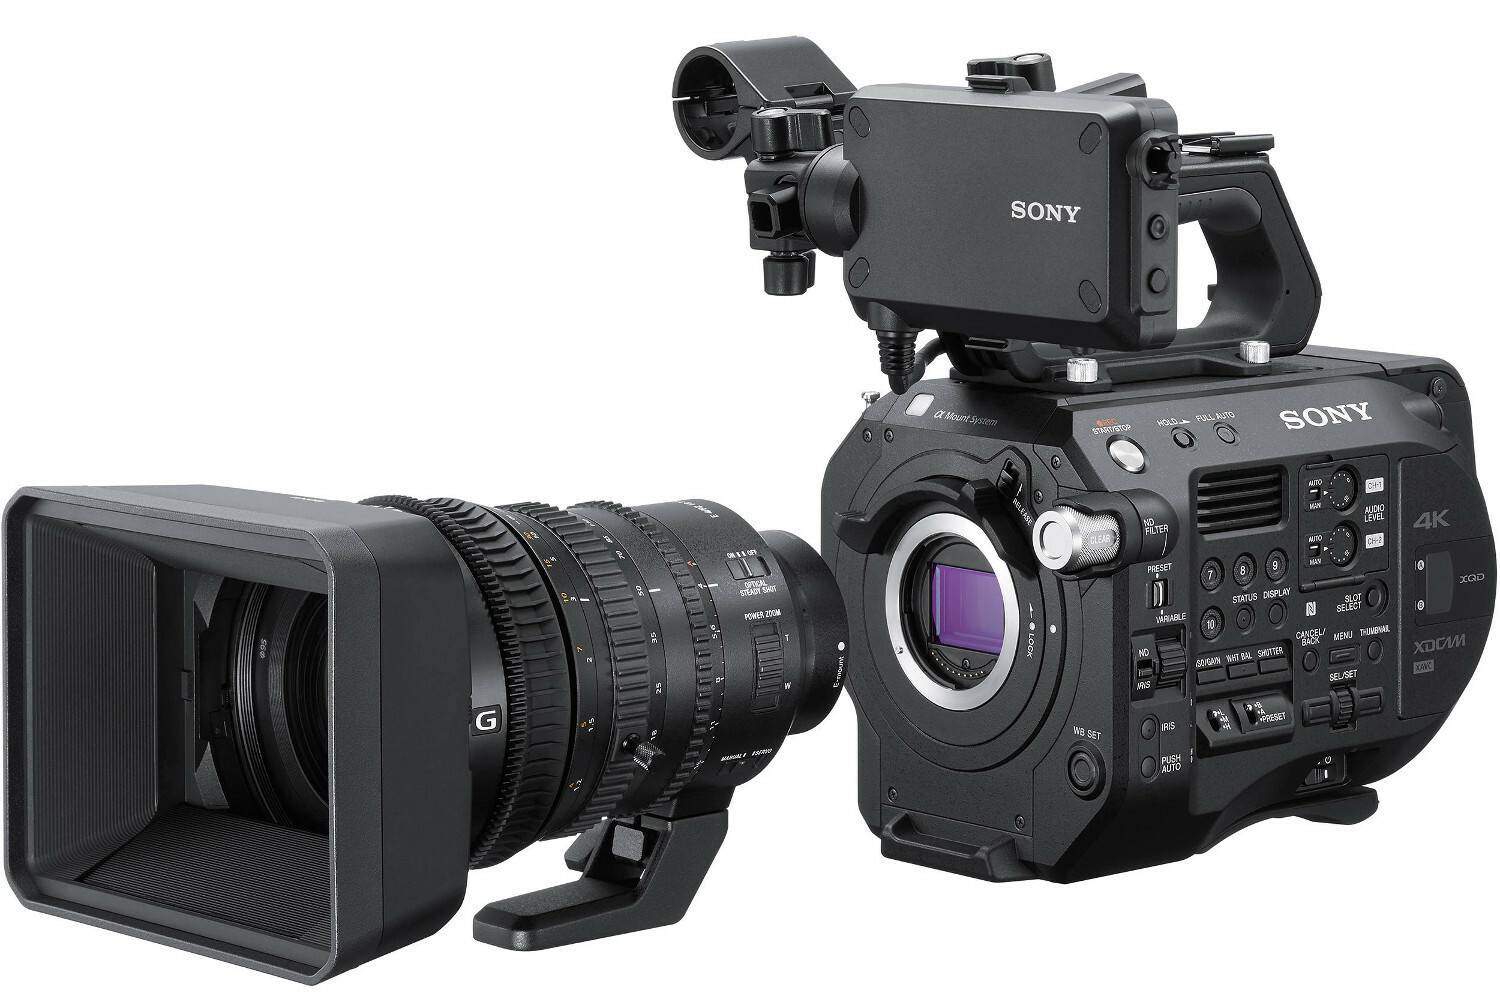 Sony PXW-FS7M2 4K XDCAM Super35 Compact Camcorder with 18-110mm E-Mount Power Zoom Lens